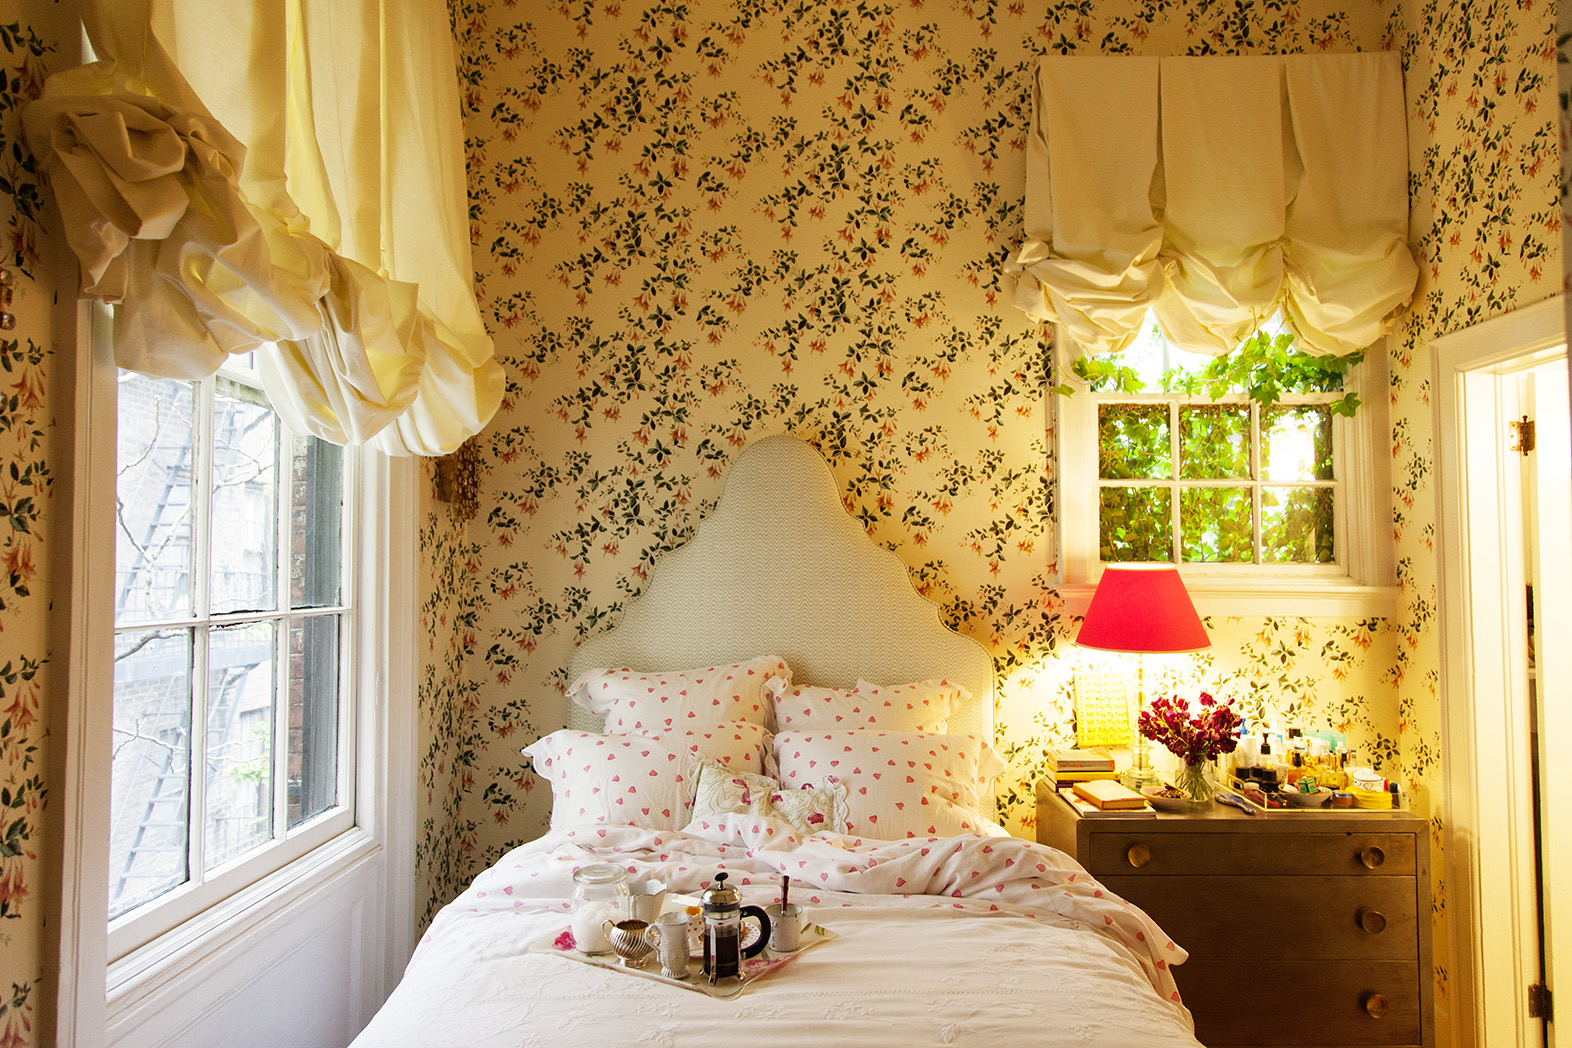 Decorating with Cece Quinn: Fabulous Florals | At Home in Arkansas